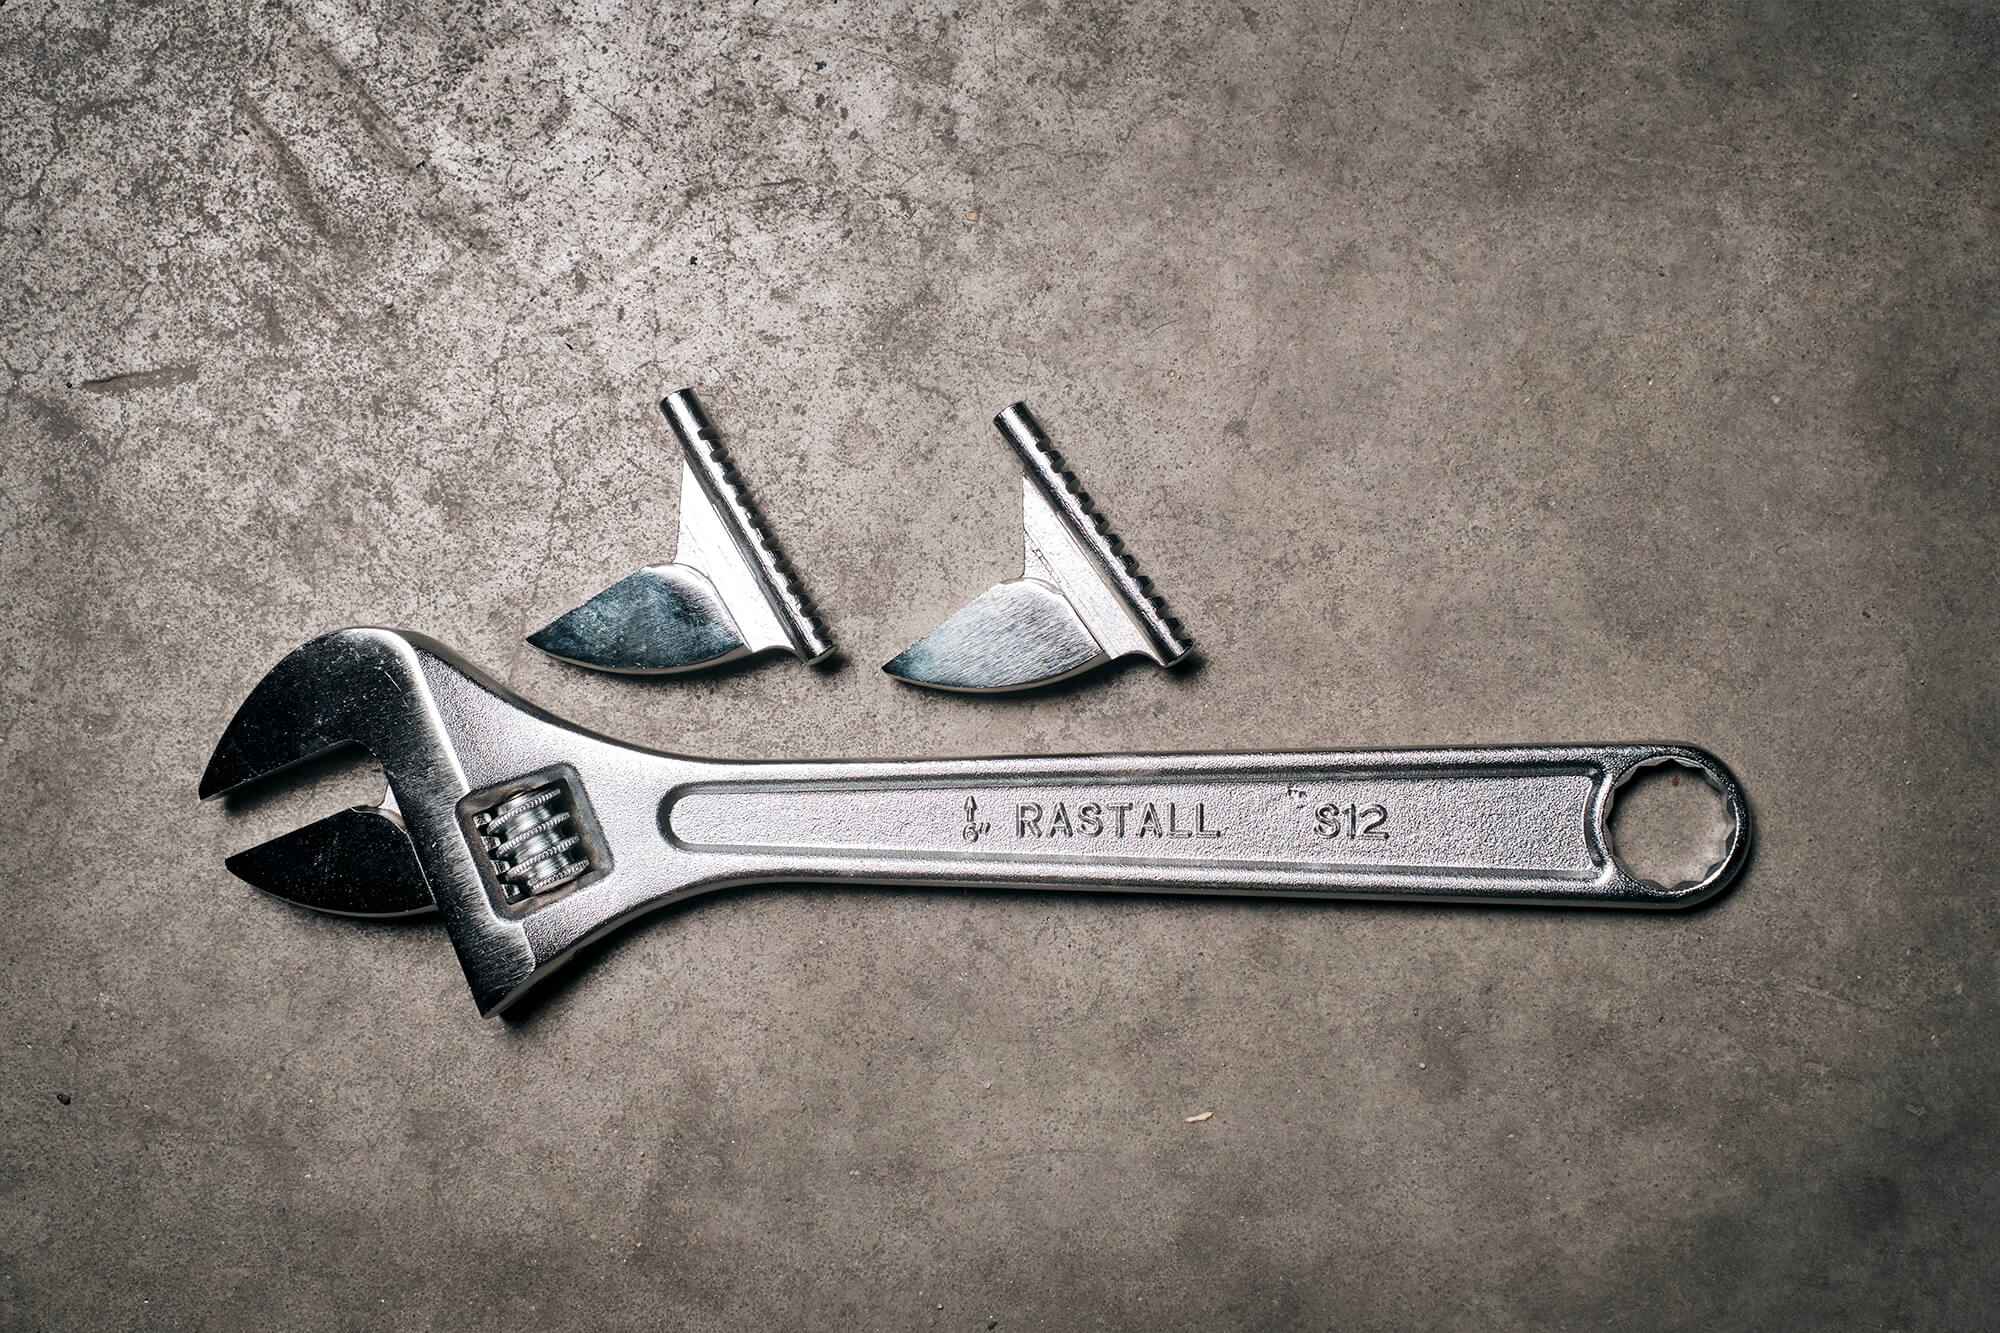 Rastall wrenches